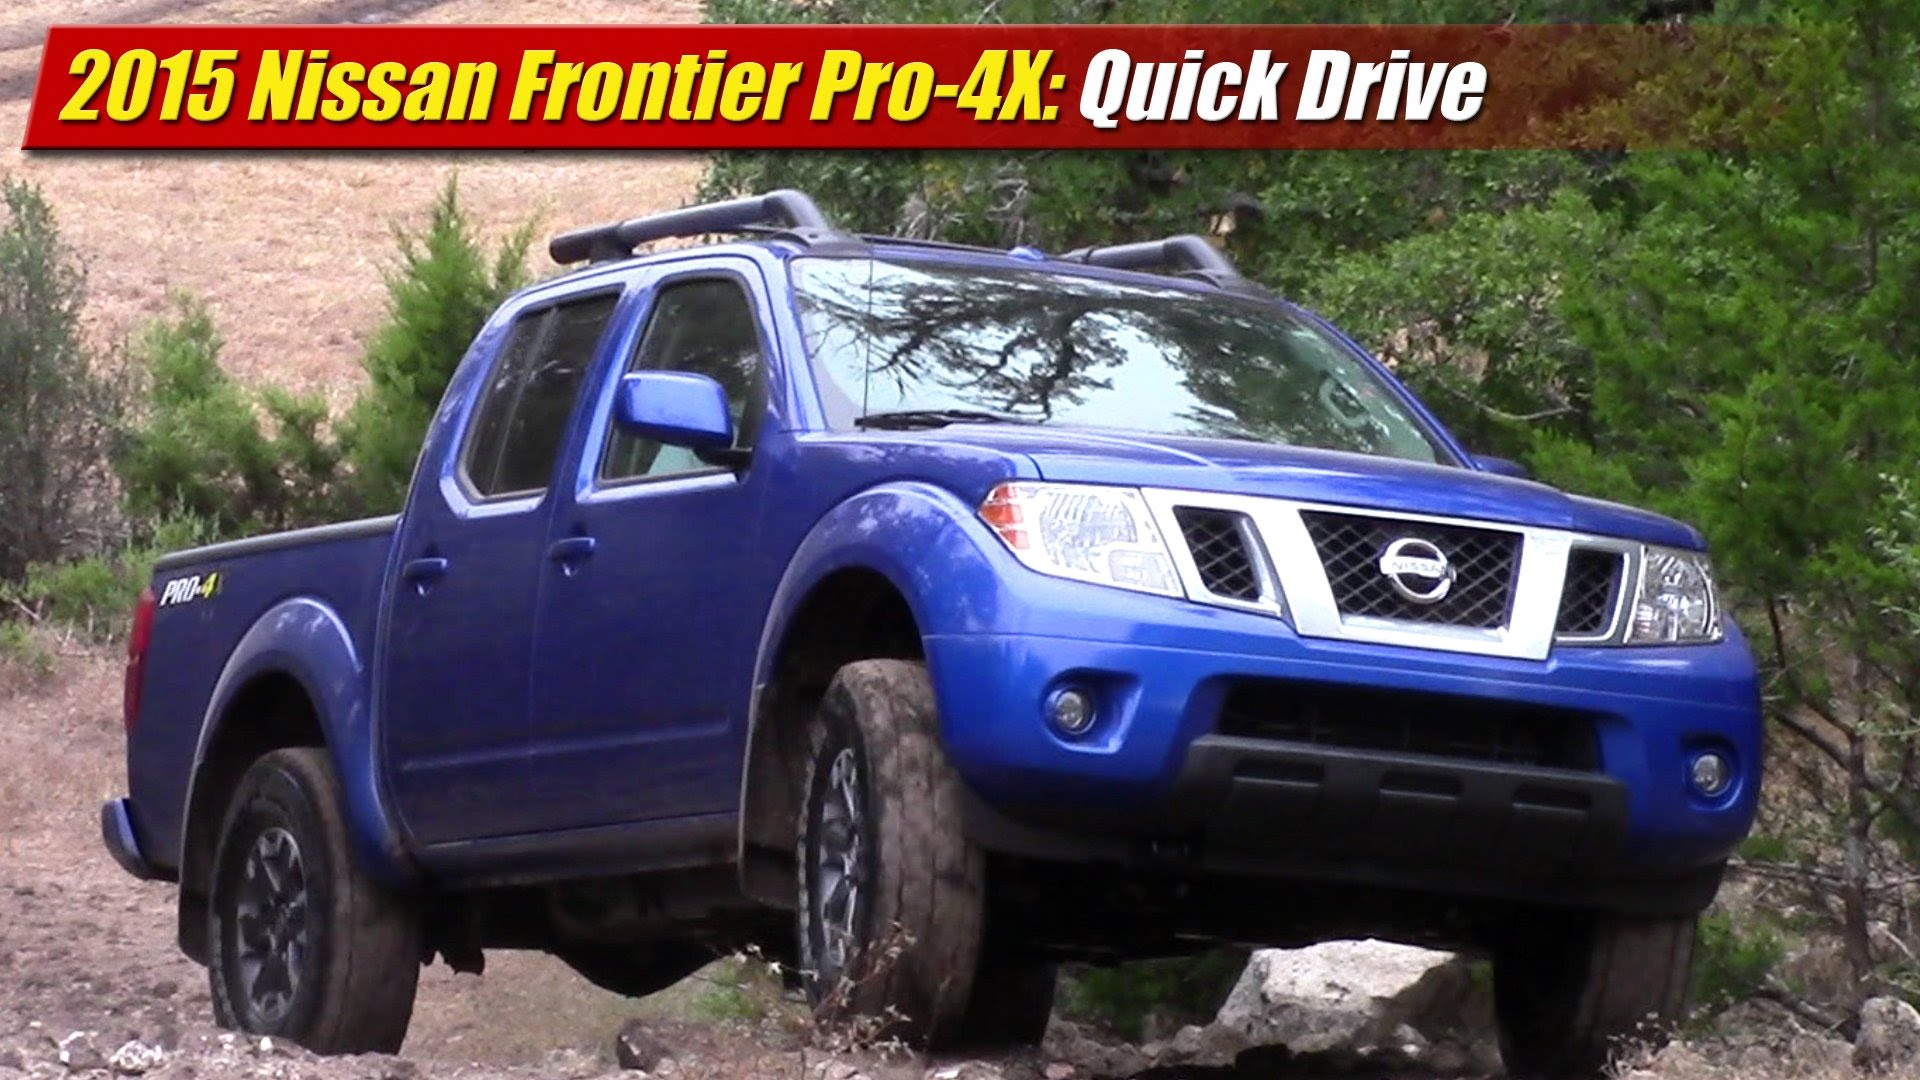 nissan com pro basics gets to back frontier dsc tflcar the